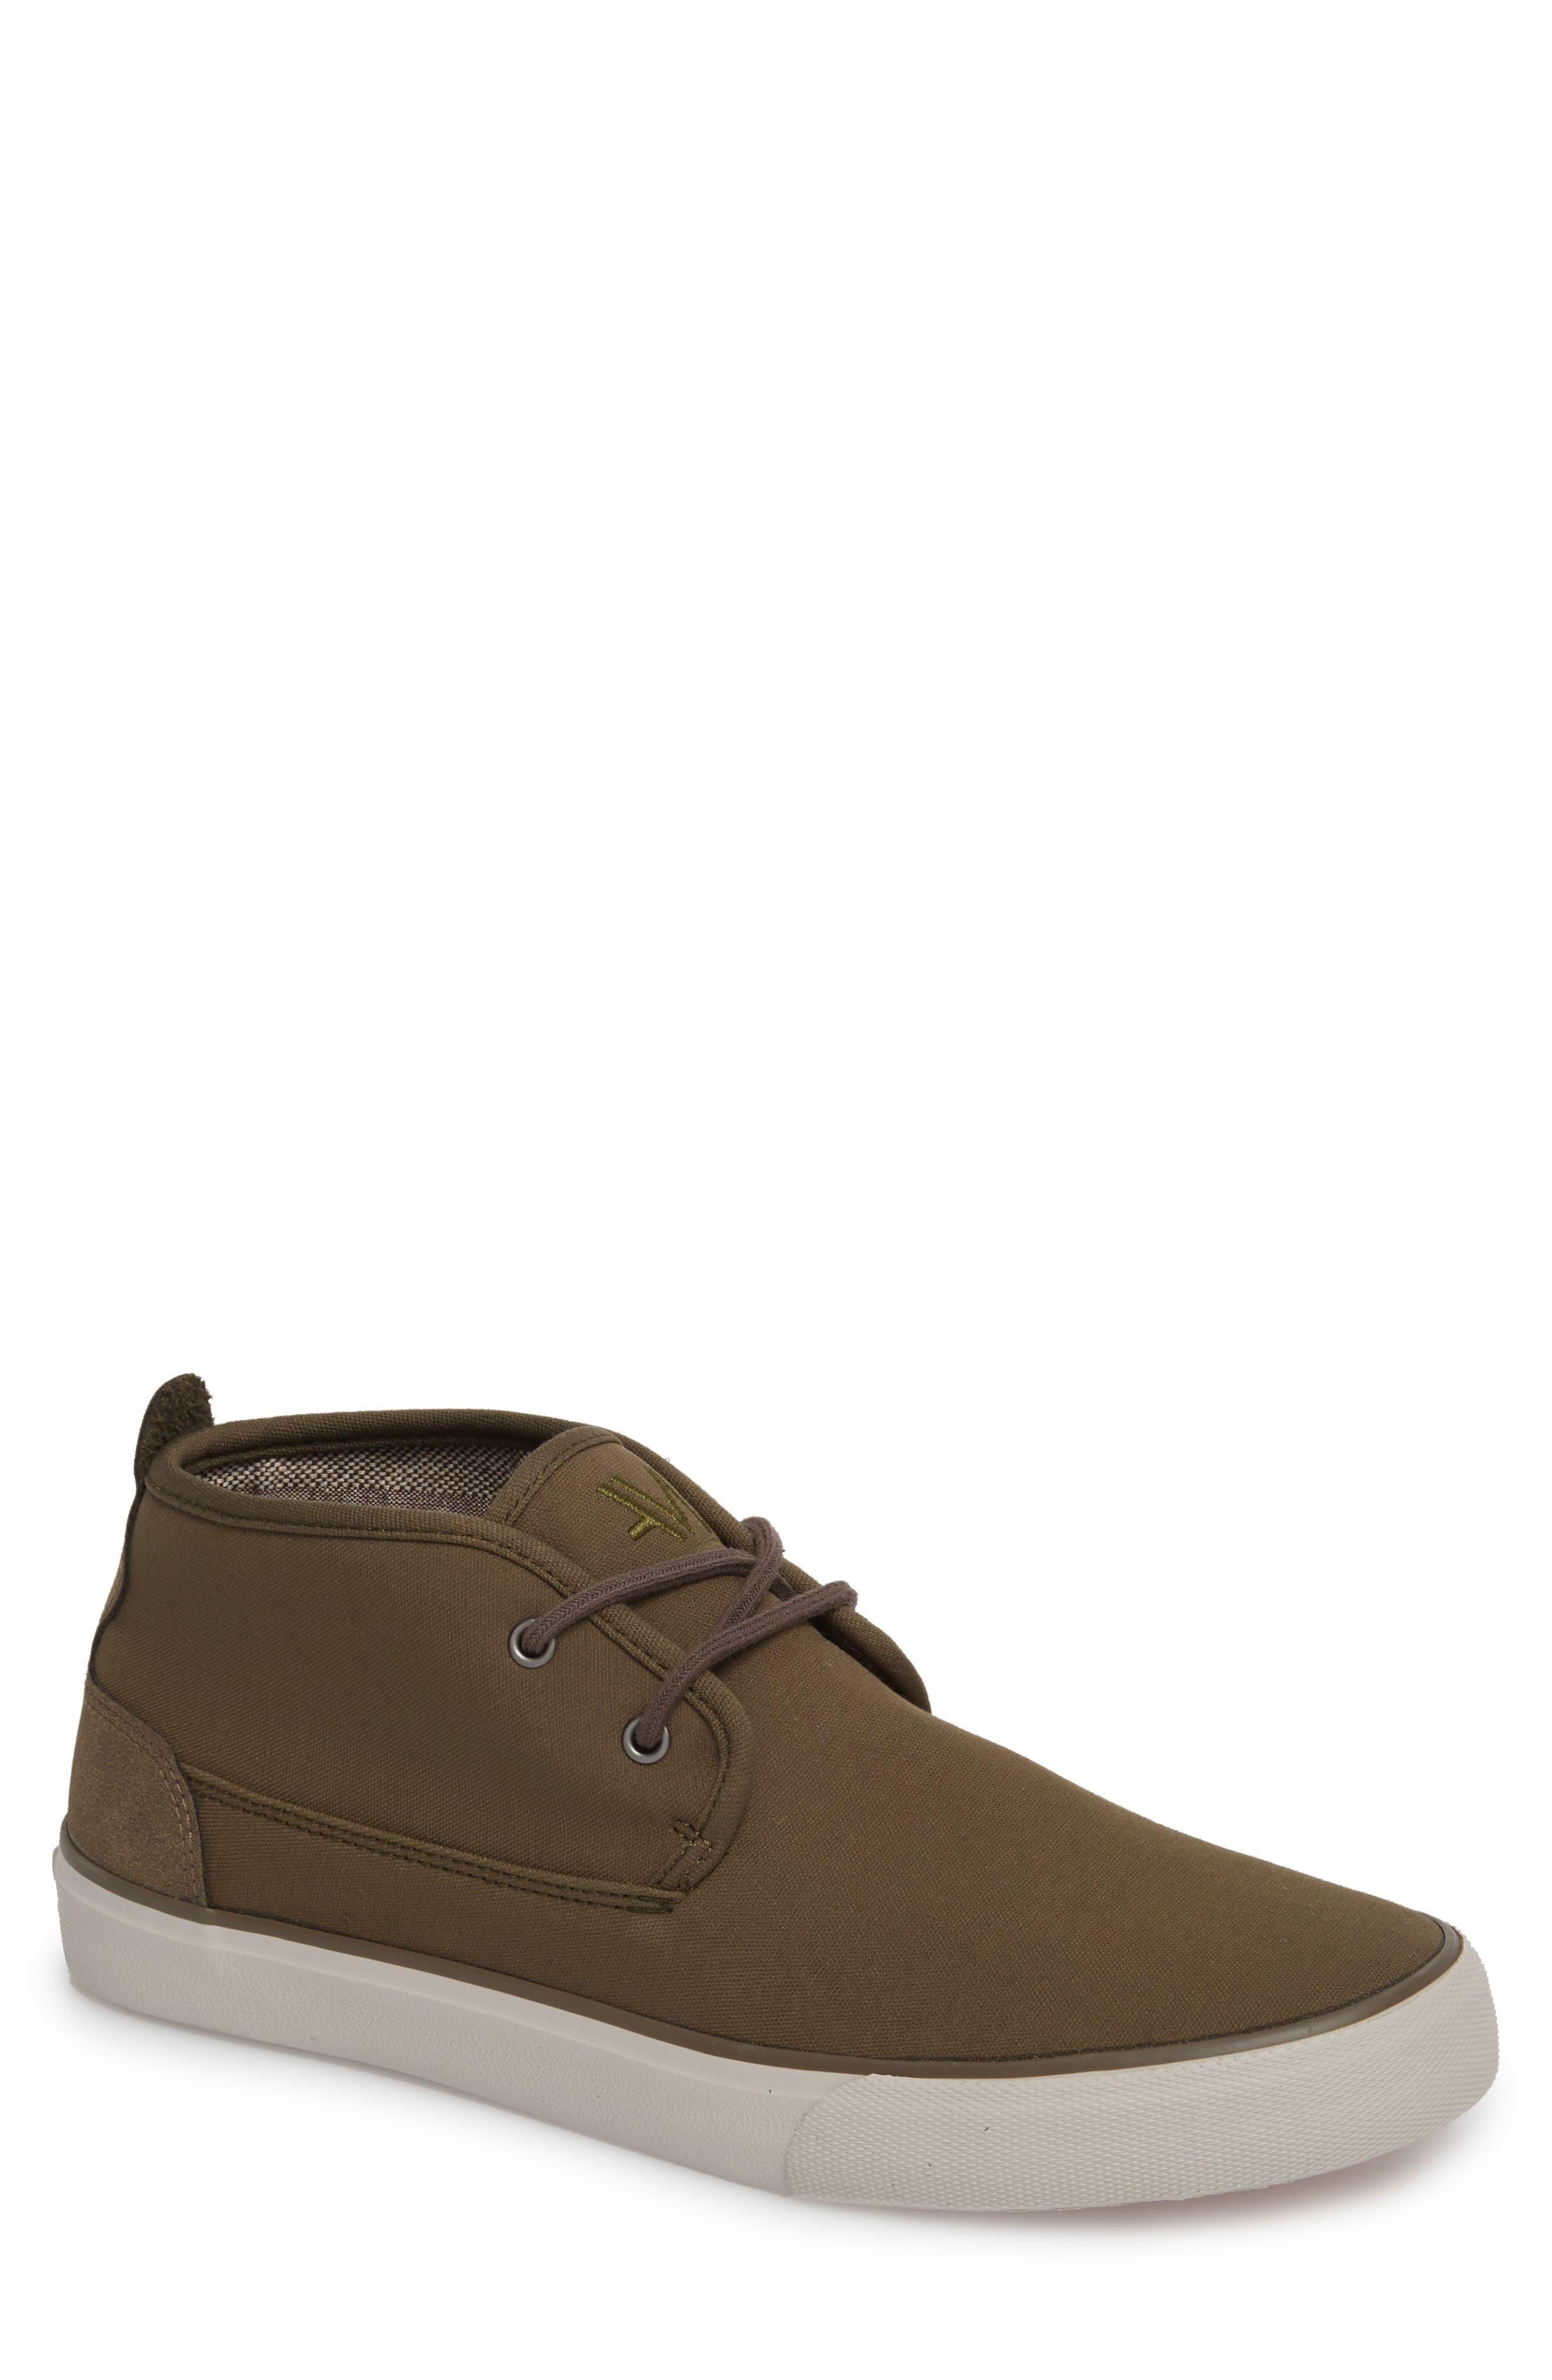 Reade Chukka Sneaker,                         Main,                         color, Olive/ Gum